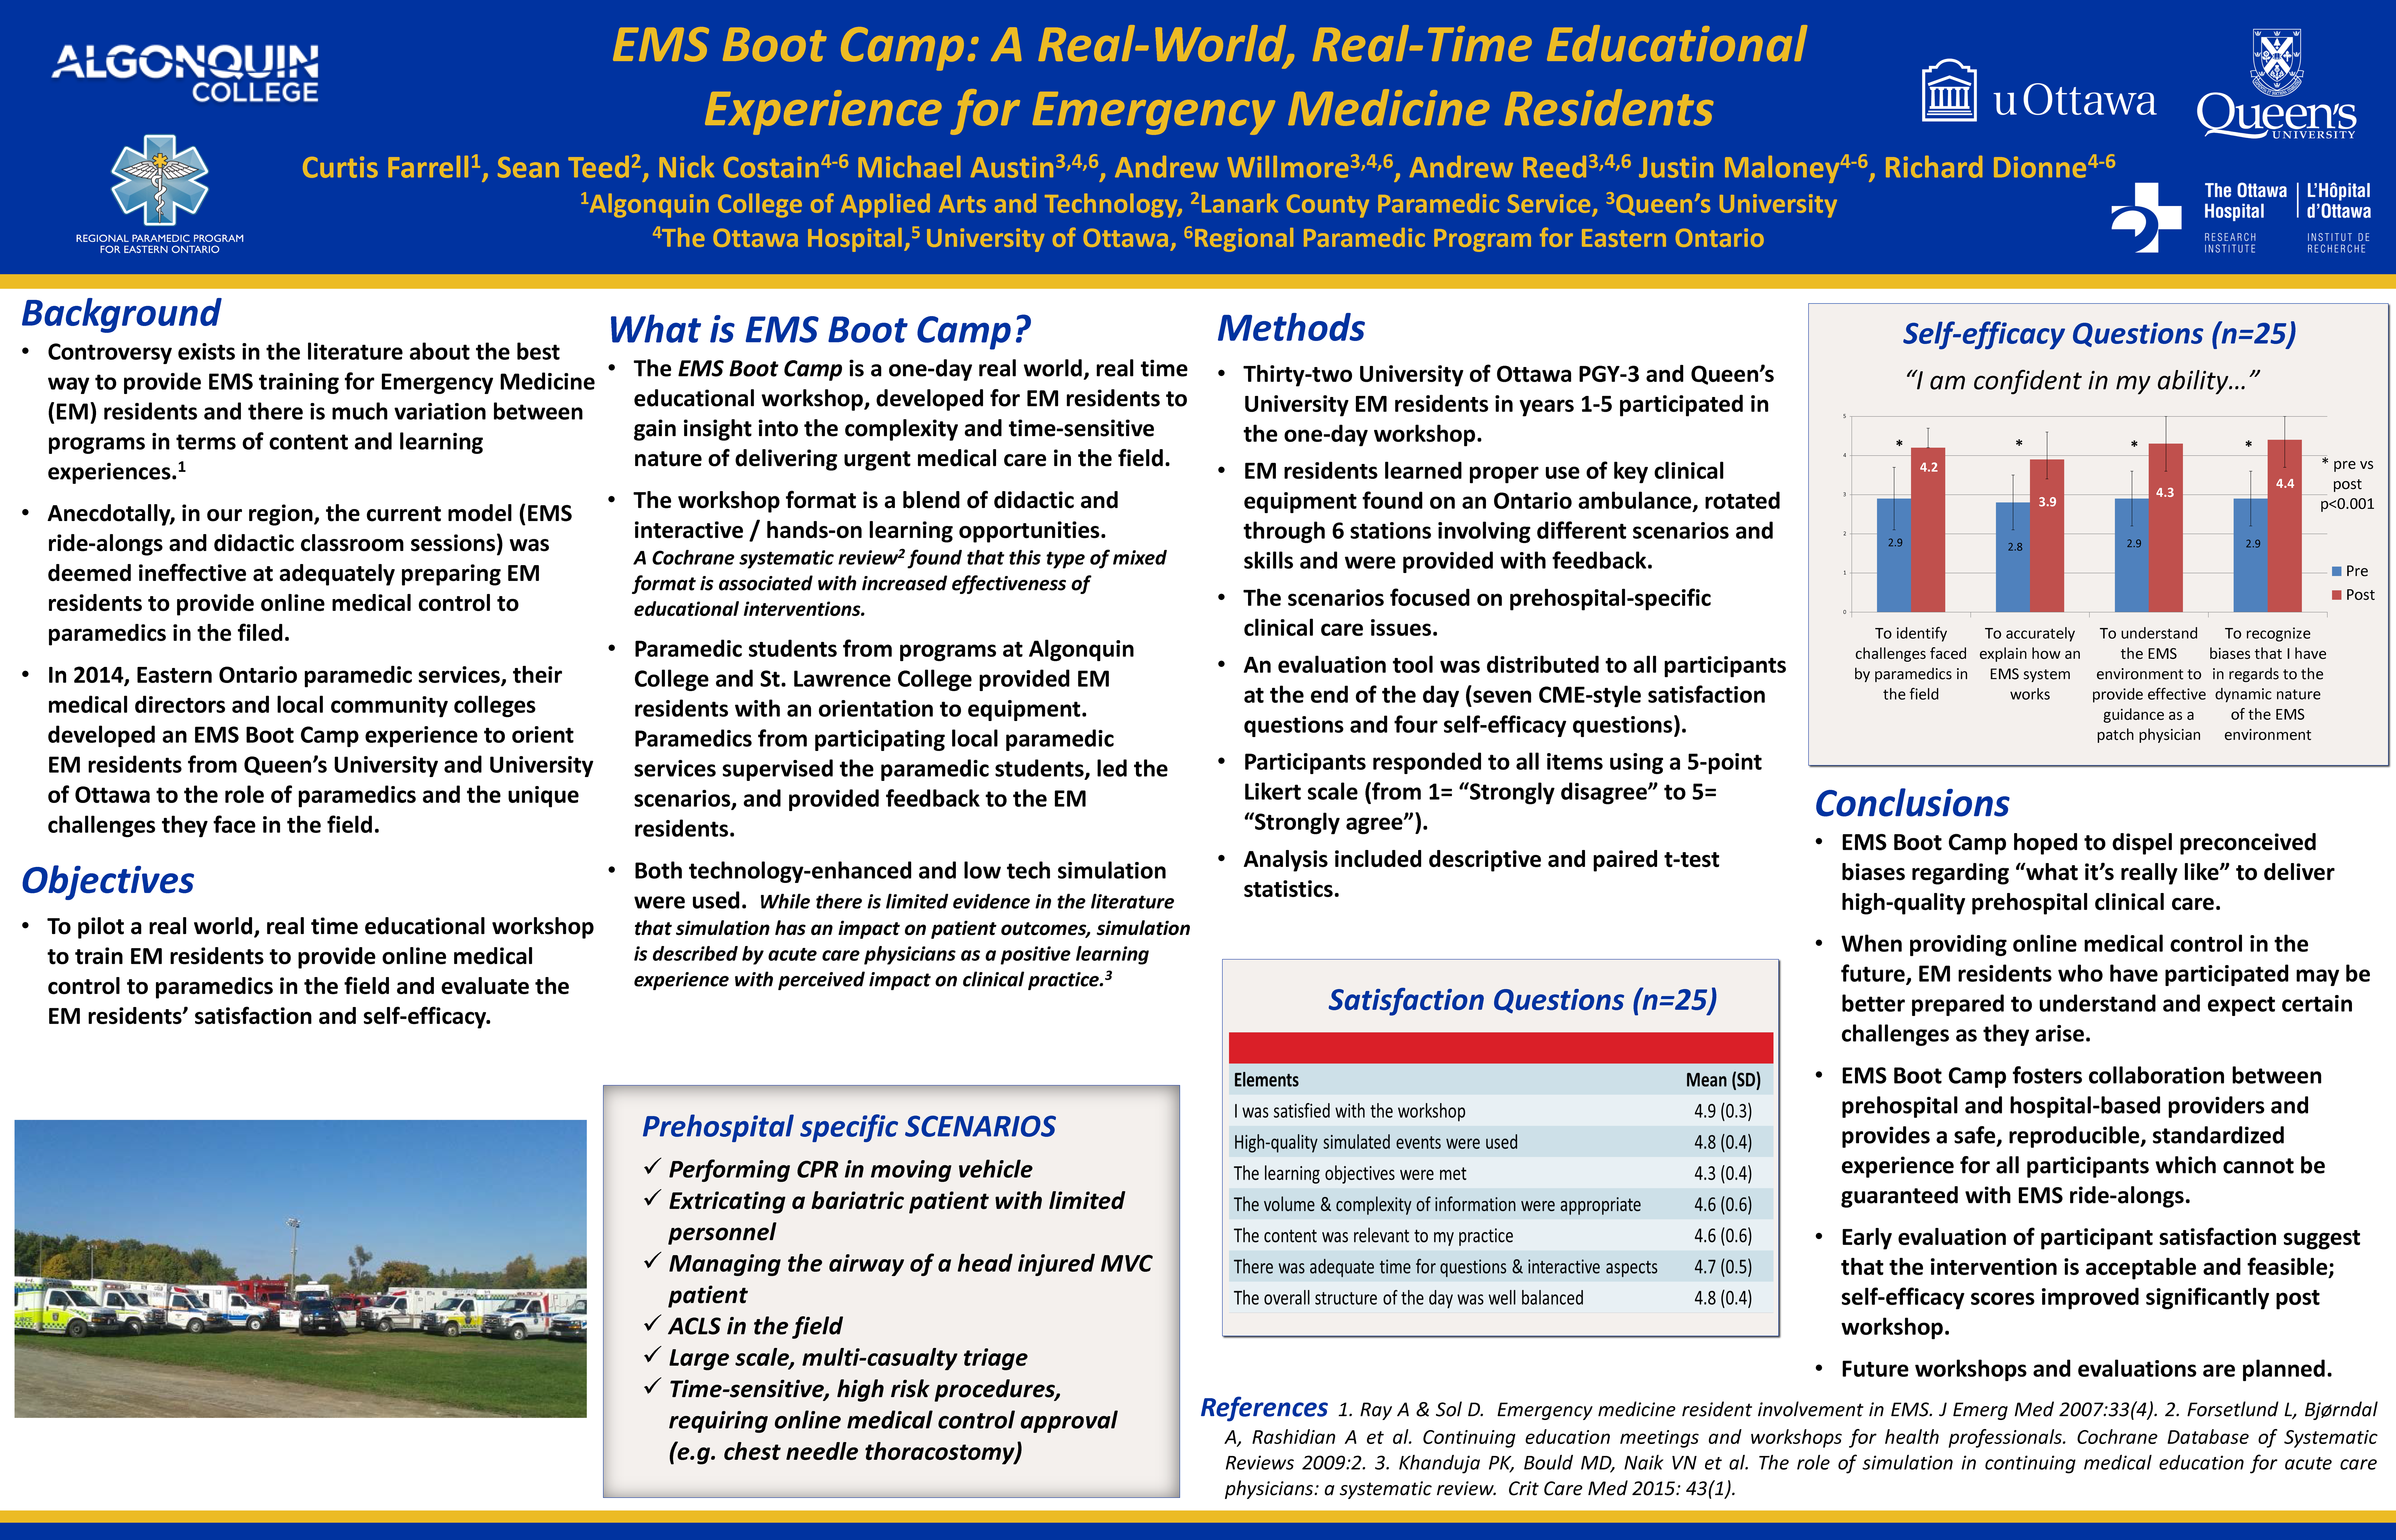 EMS Boot Camp: A Real-World, Real-Time Educational Experience for Emergency Medicine Residents